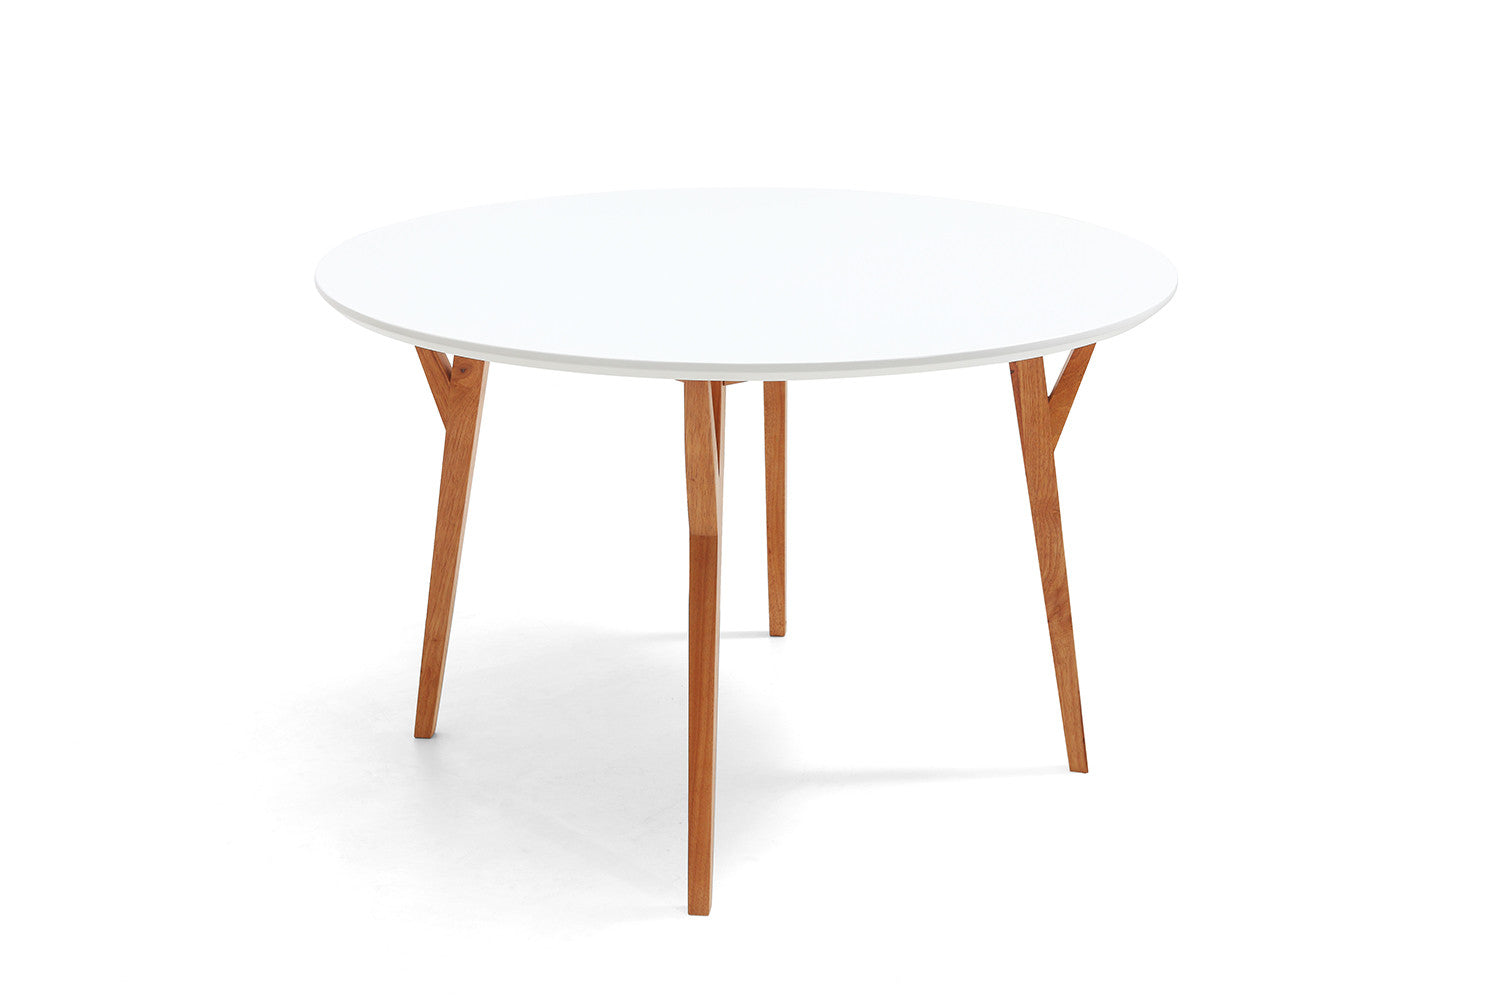 Table de salle manger ronde design scandinave moesa for Table de salle a manger style nordique